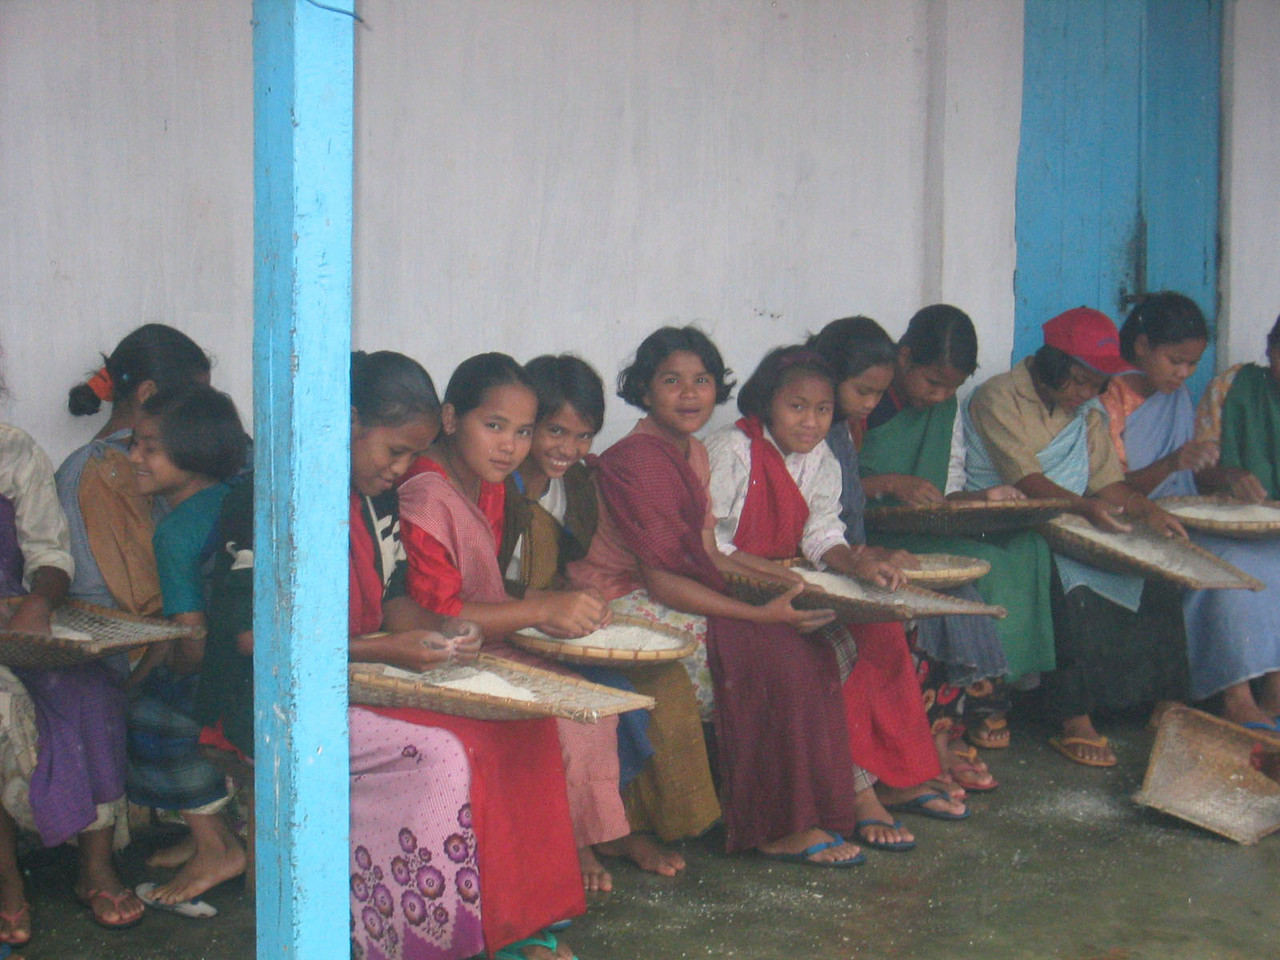 With plentiful rain, rice is a staple food in Maweit. Girls must perform the tedious task of sorting the rice to remove soil, small stones, and pests.